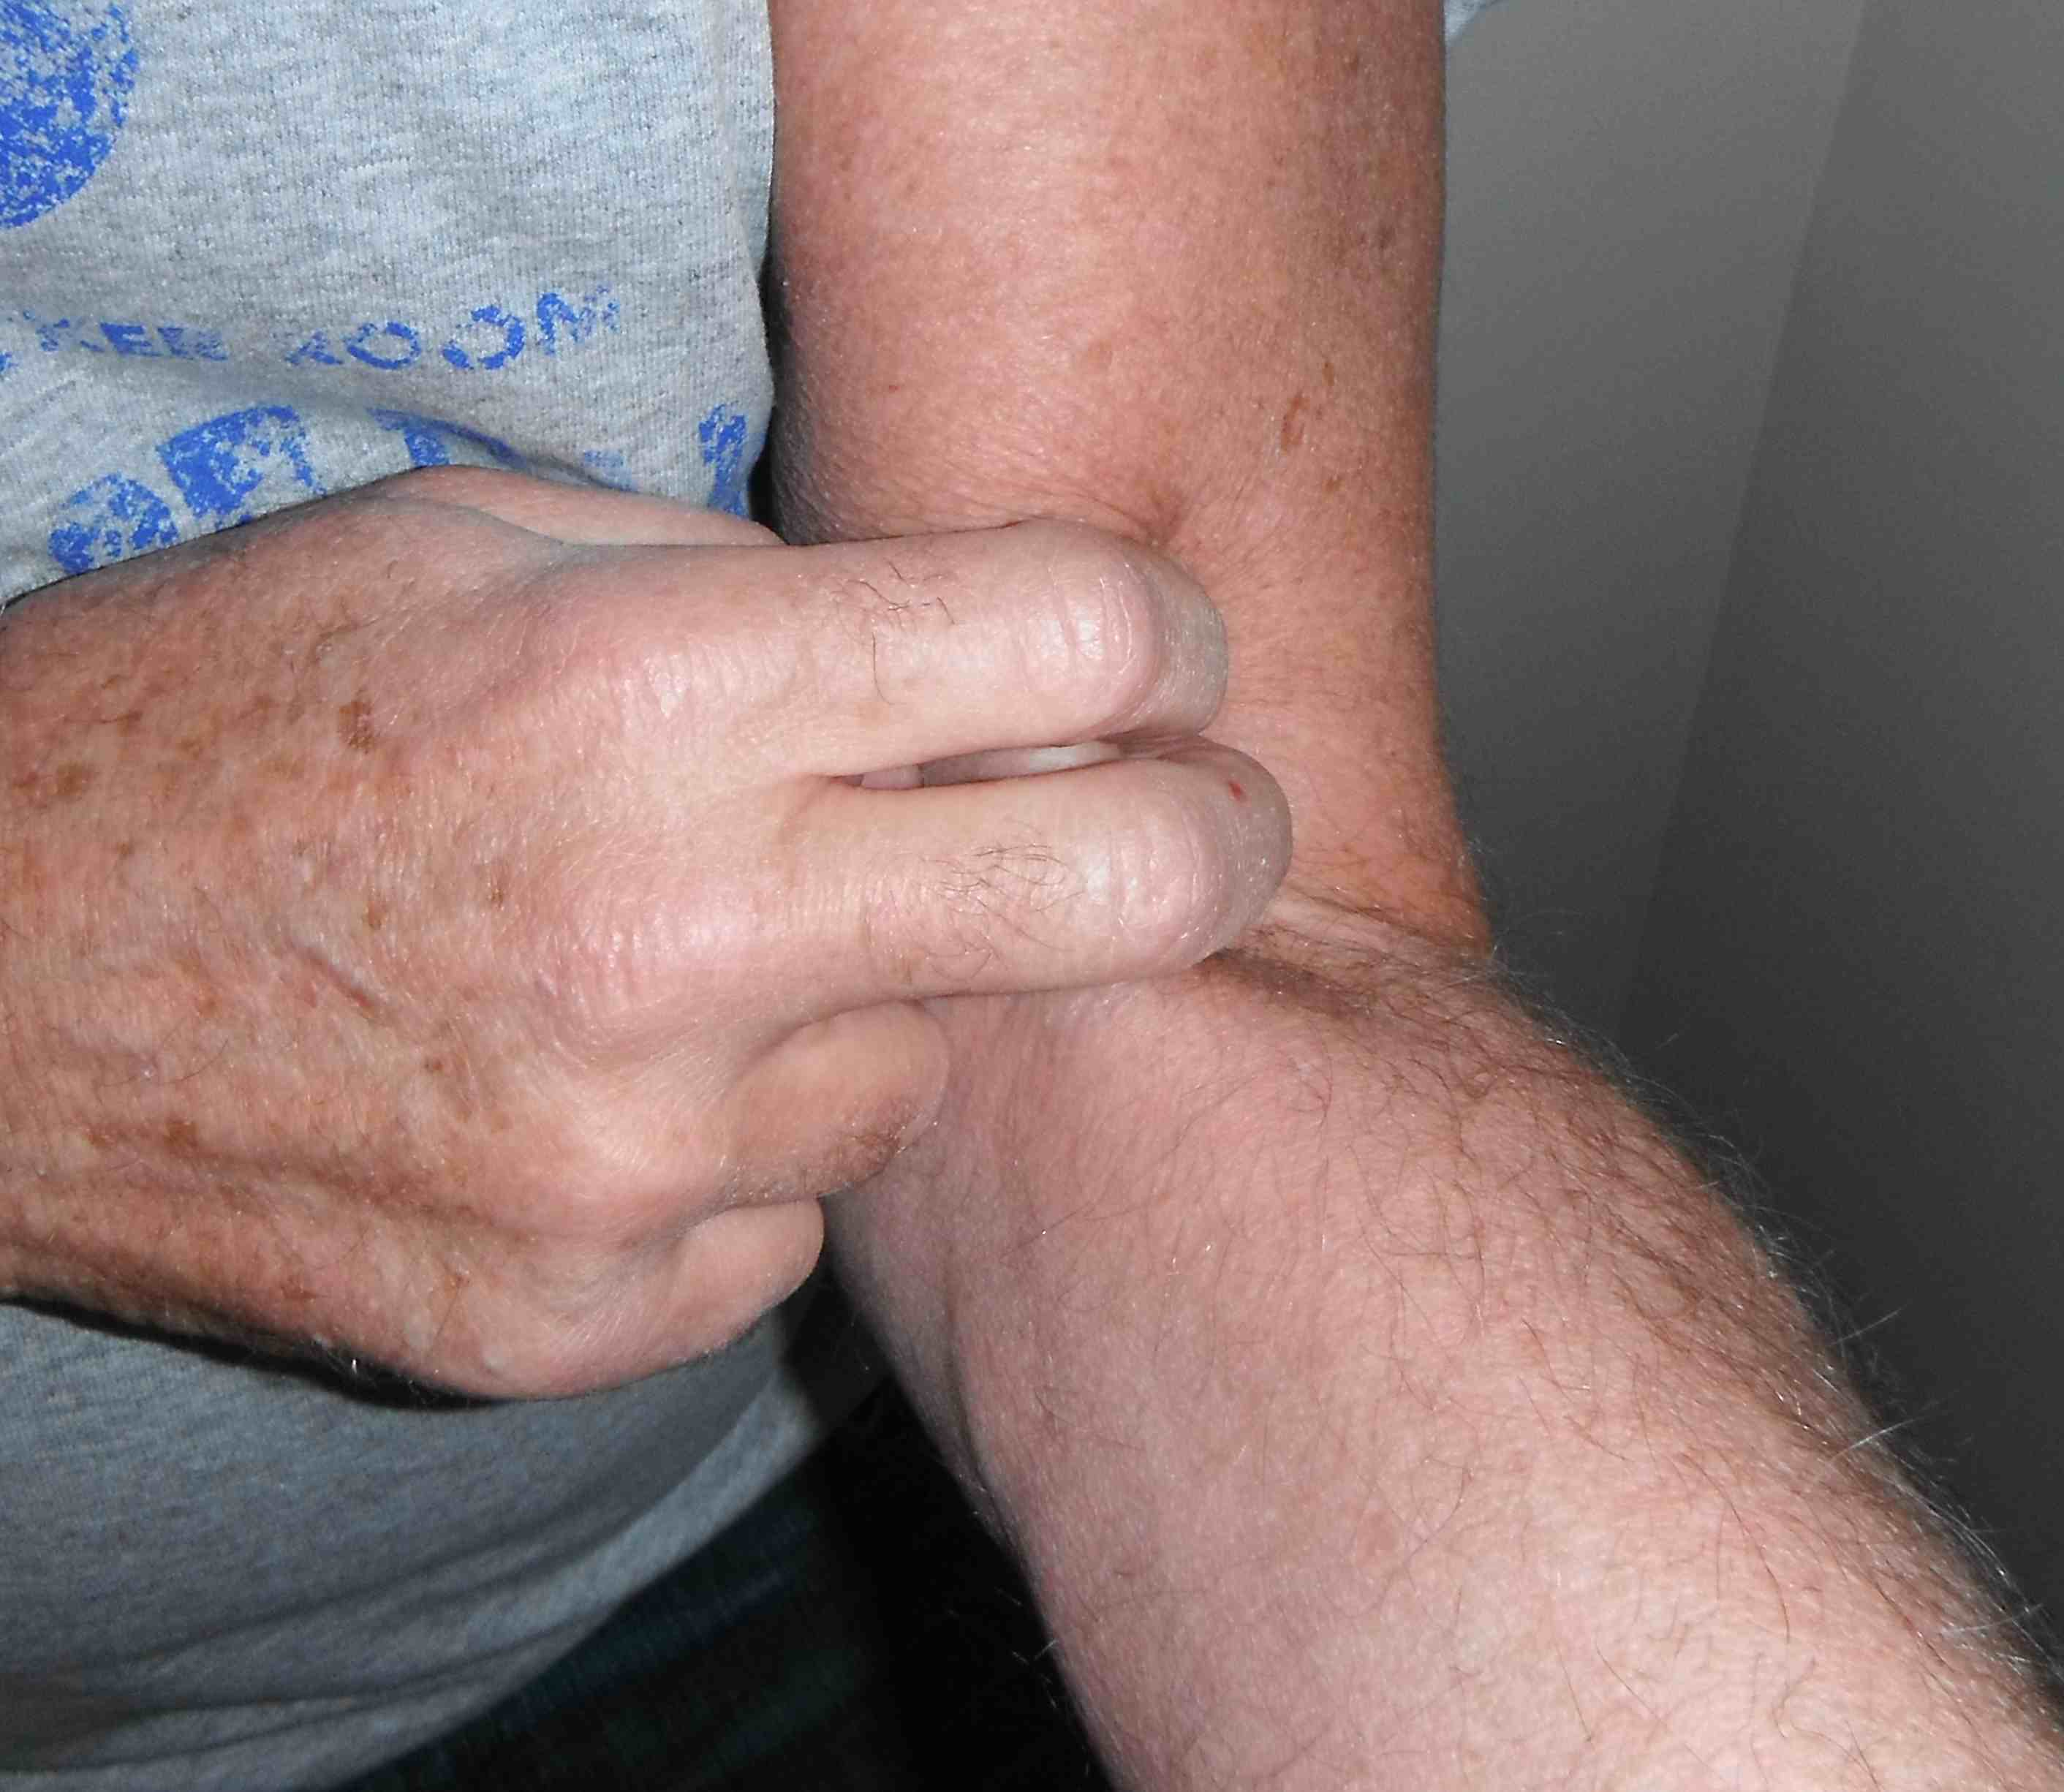 Biceps Tendon Hook Test